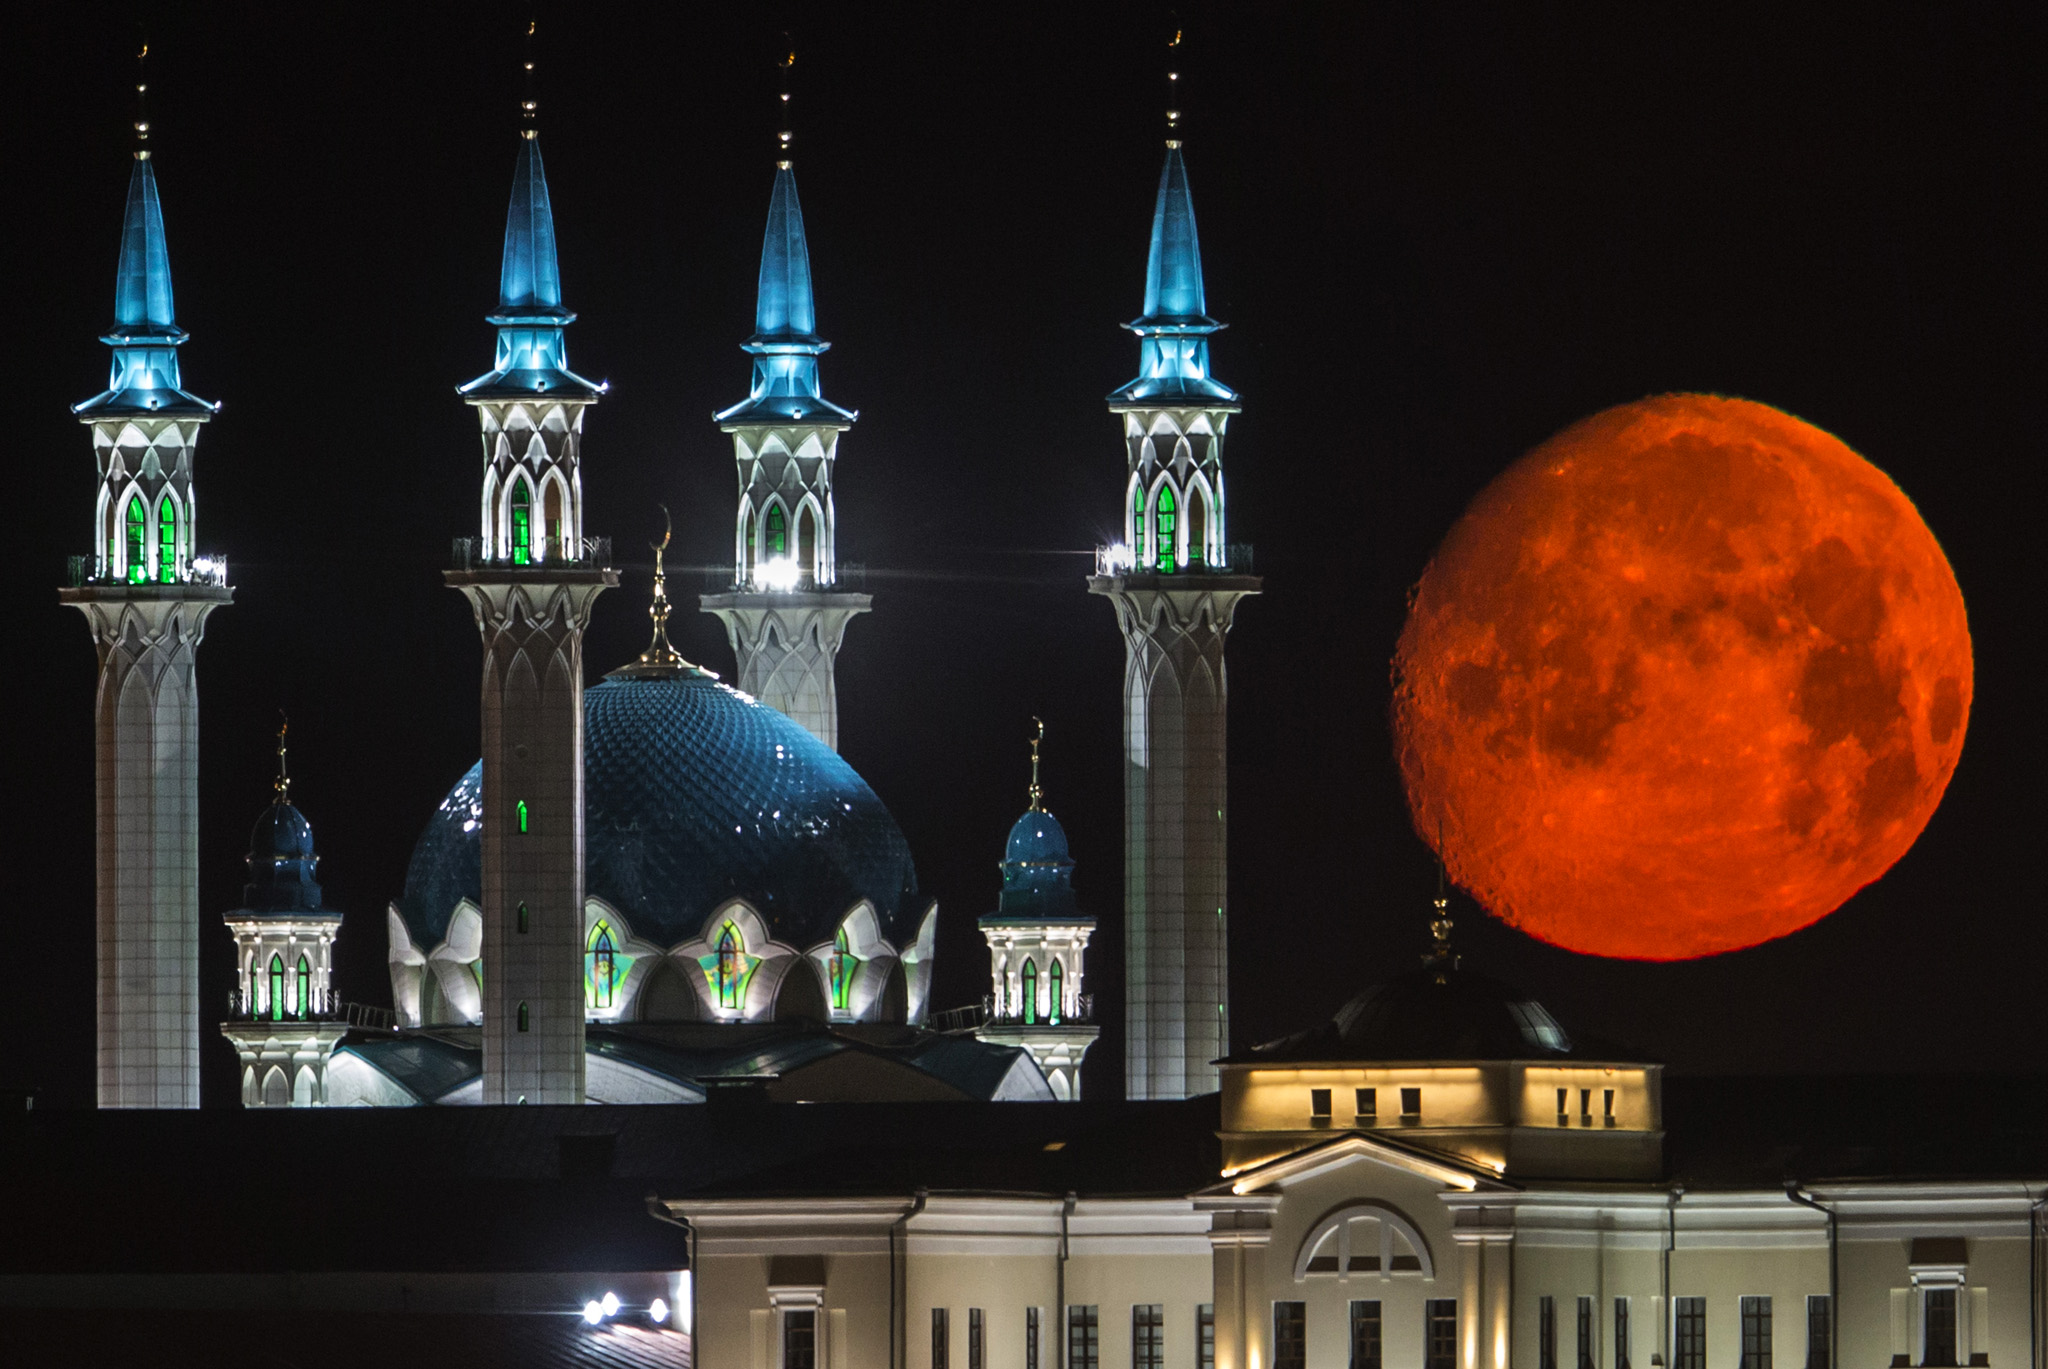 The full moon rises over the illuminated Kazan Kremlin and Qol Sharif mosque in Kazan, the capital of Tatarstan, located in Russia's Volga River area.